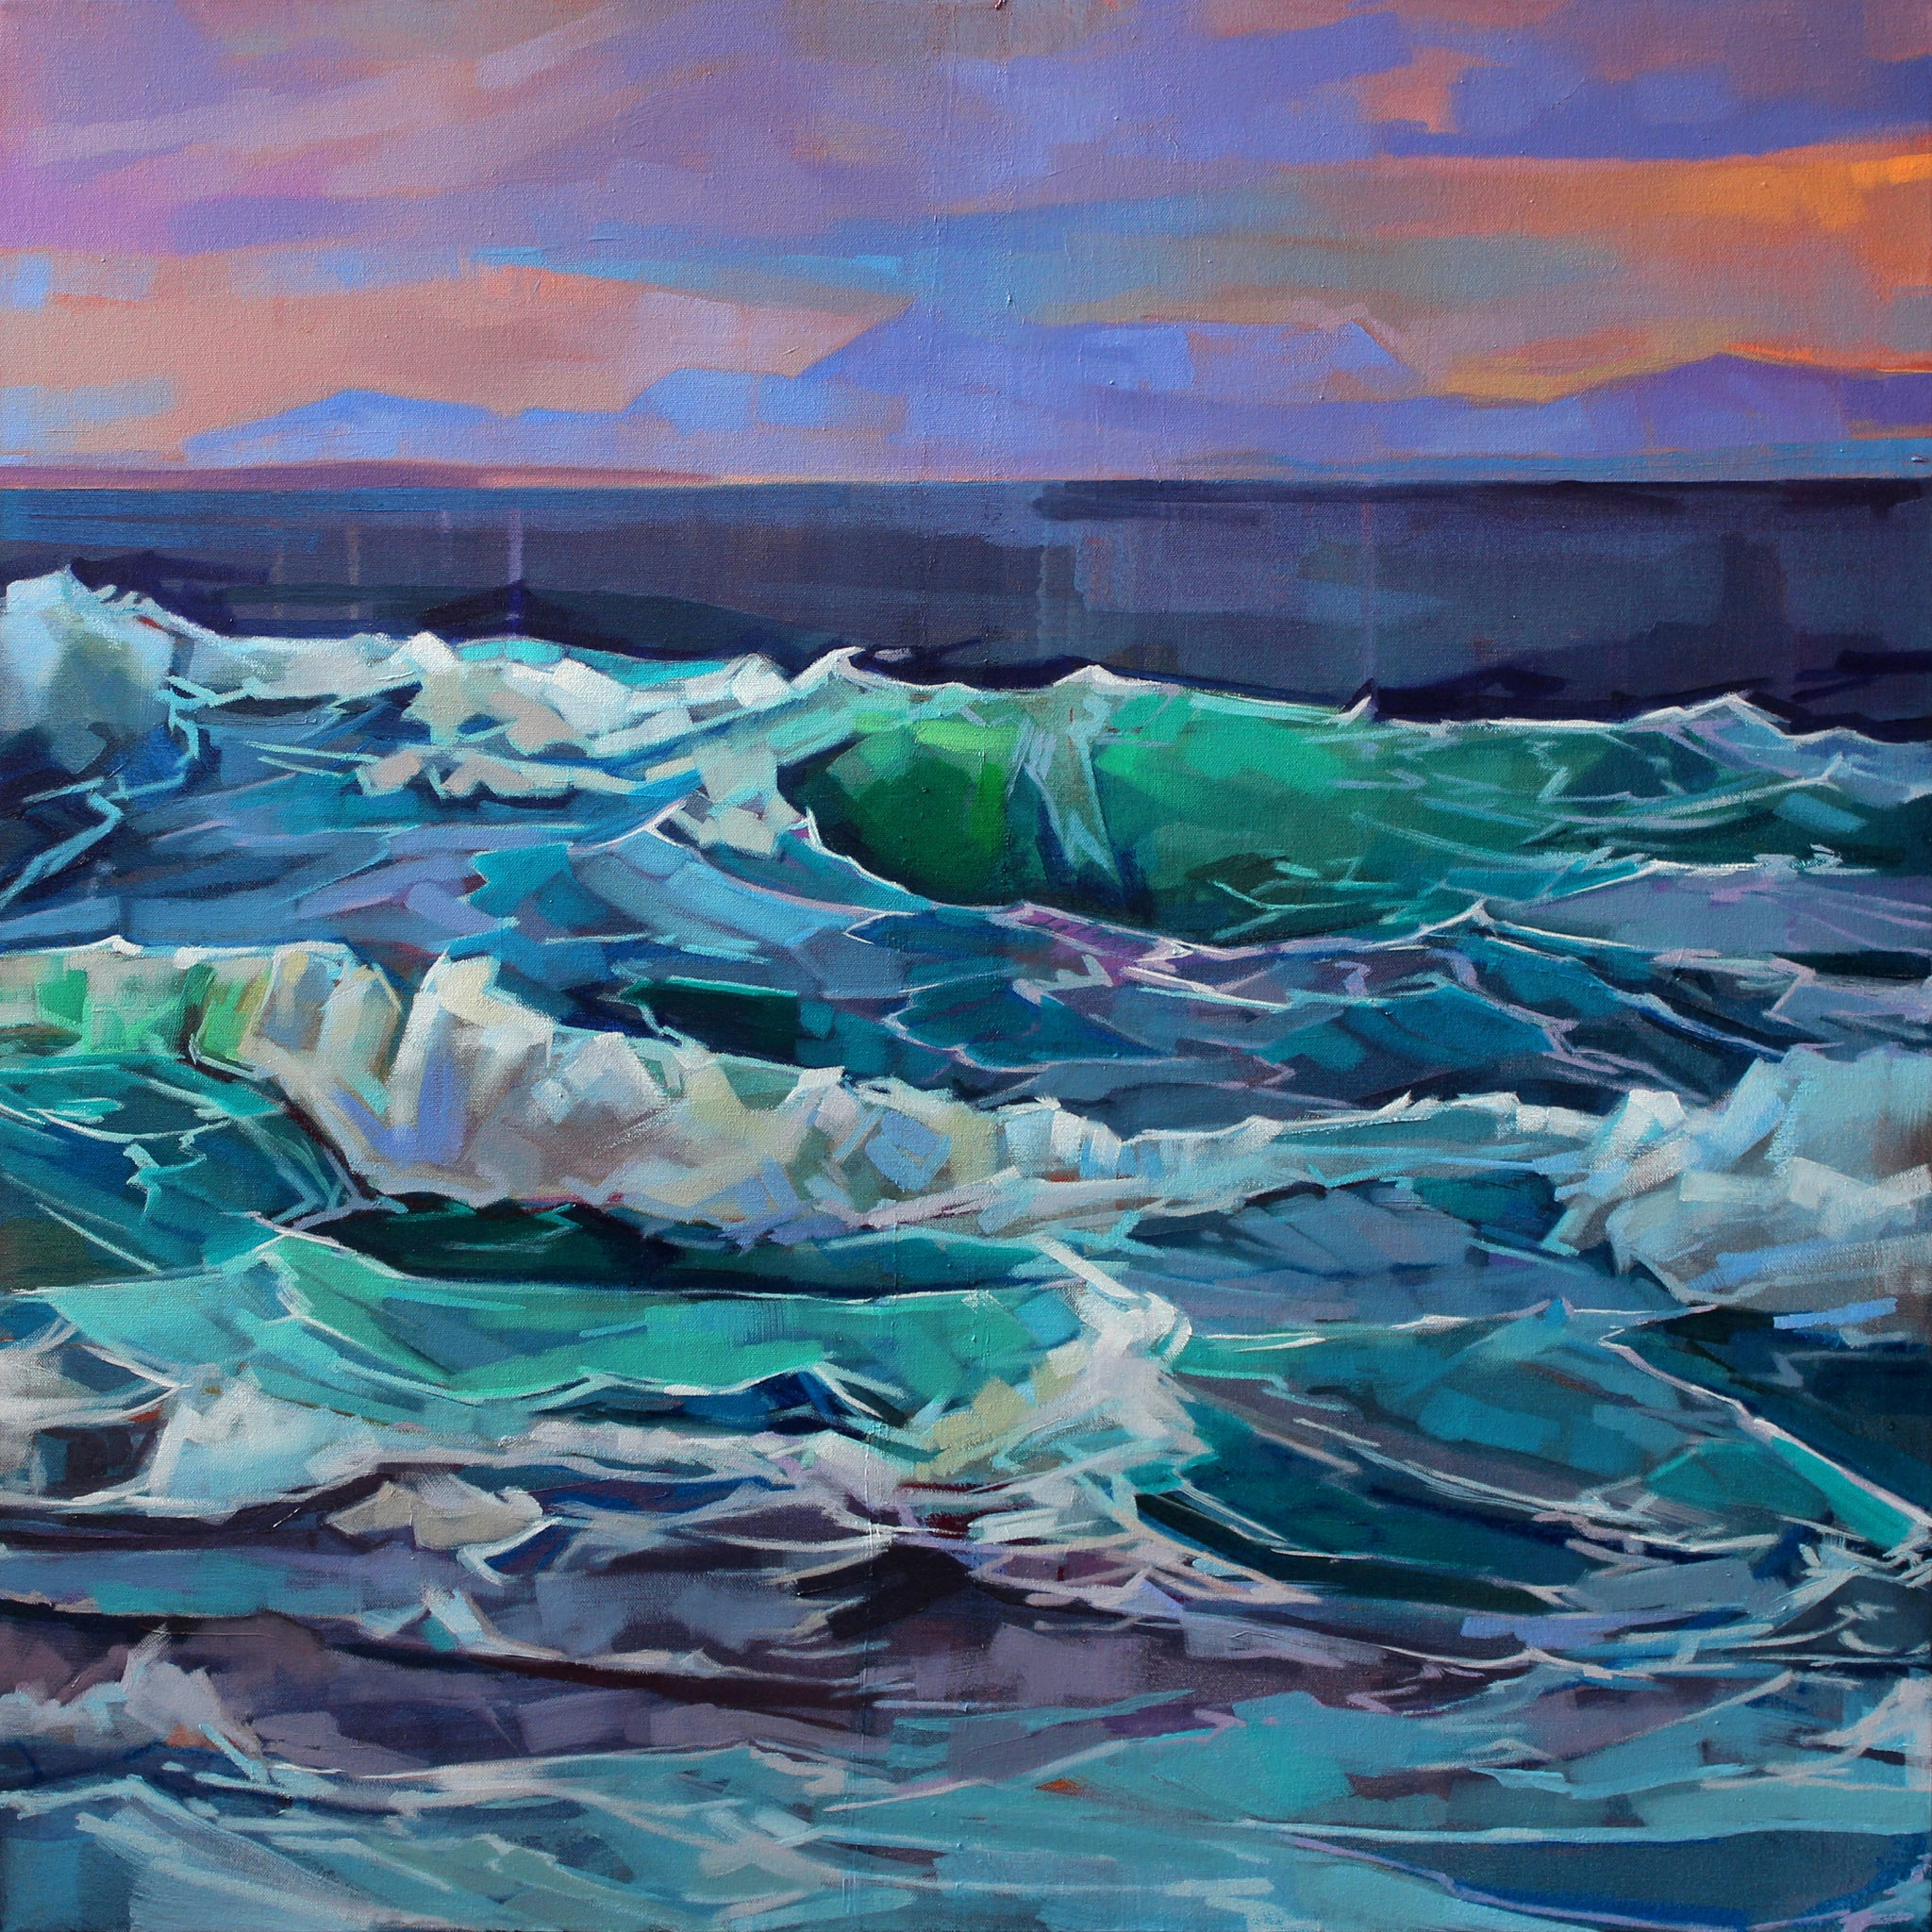 Creevy, Storm Emma II - Contemporary art from Ireland. Paintings & prints by Irish seascape & landscape artist Kevin Lowery.